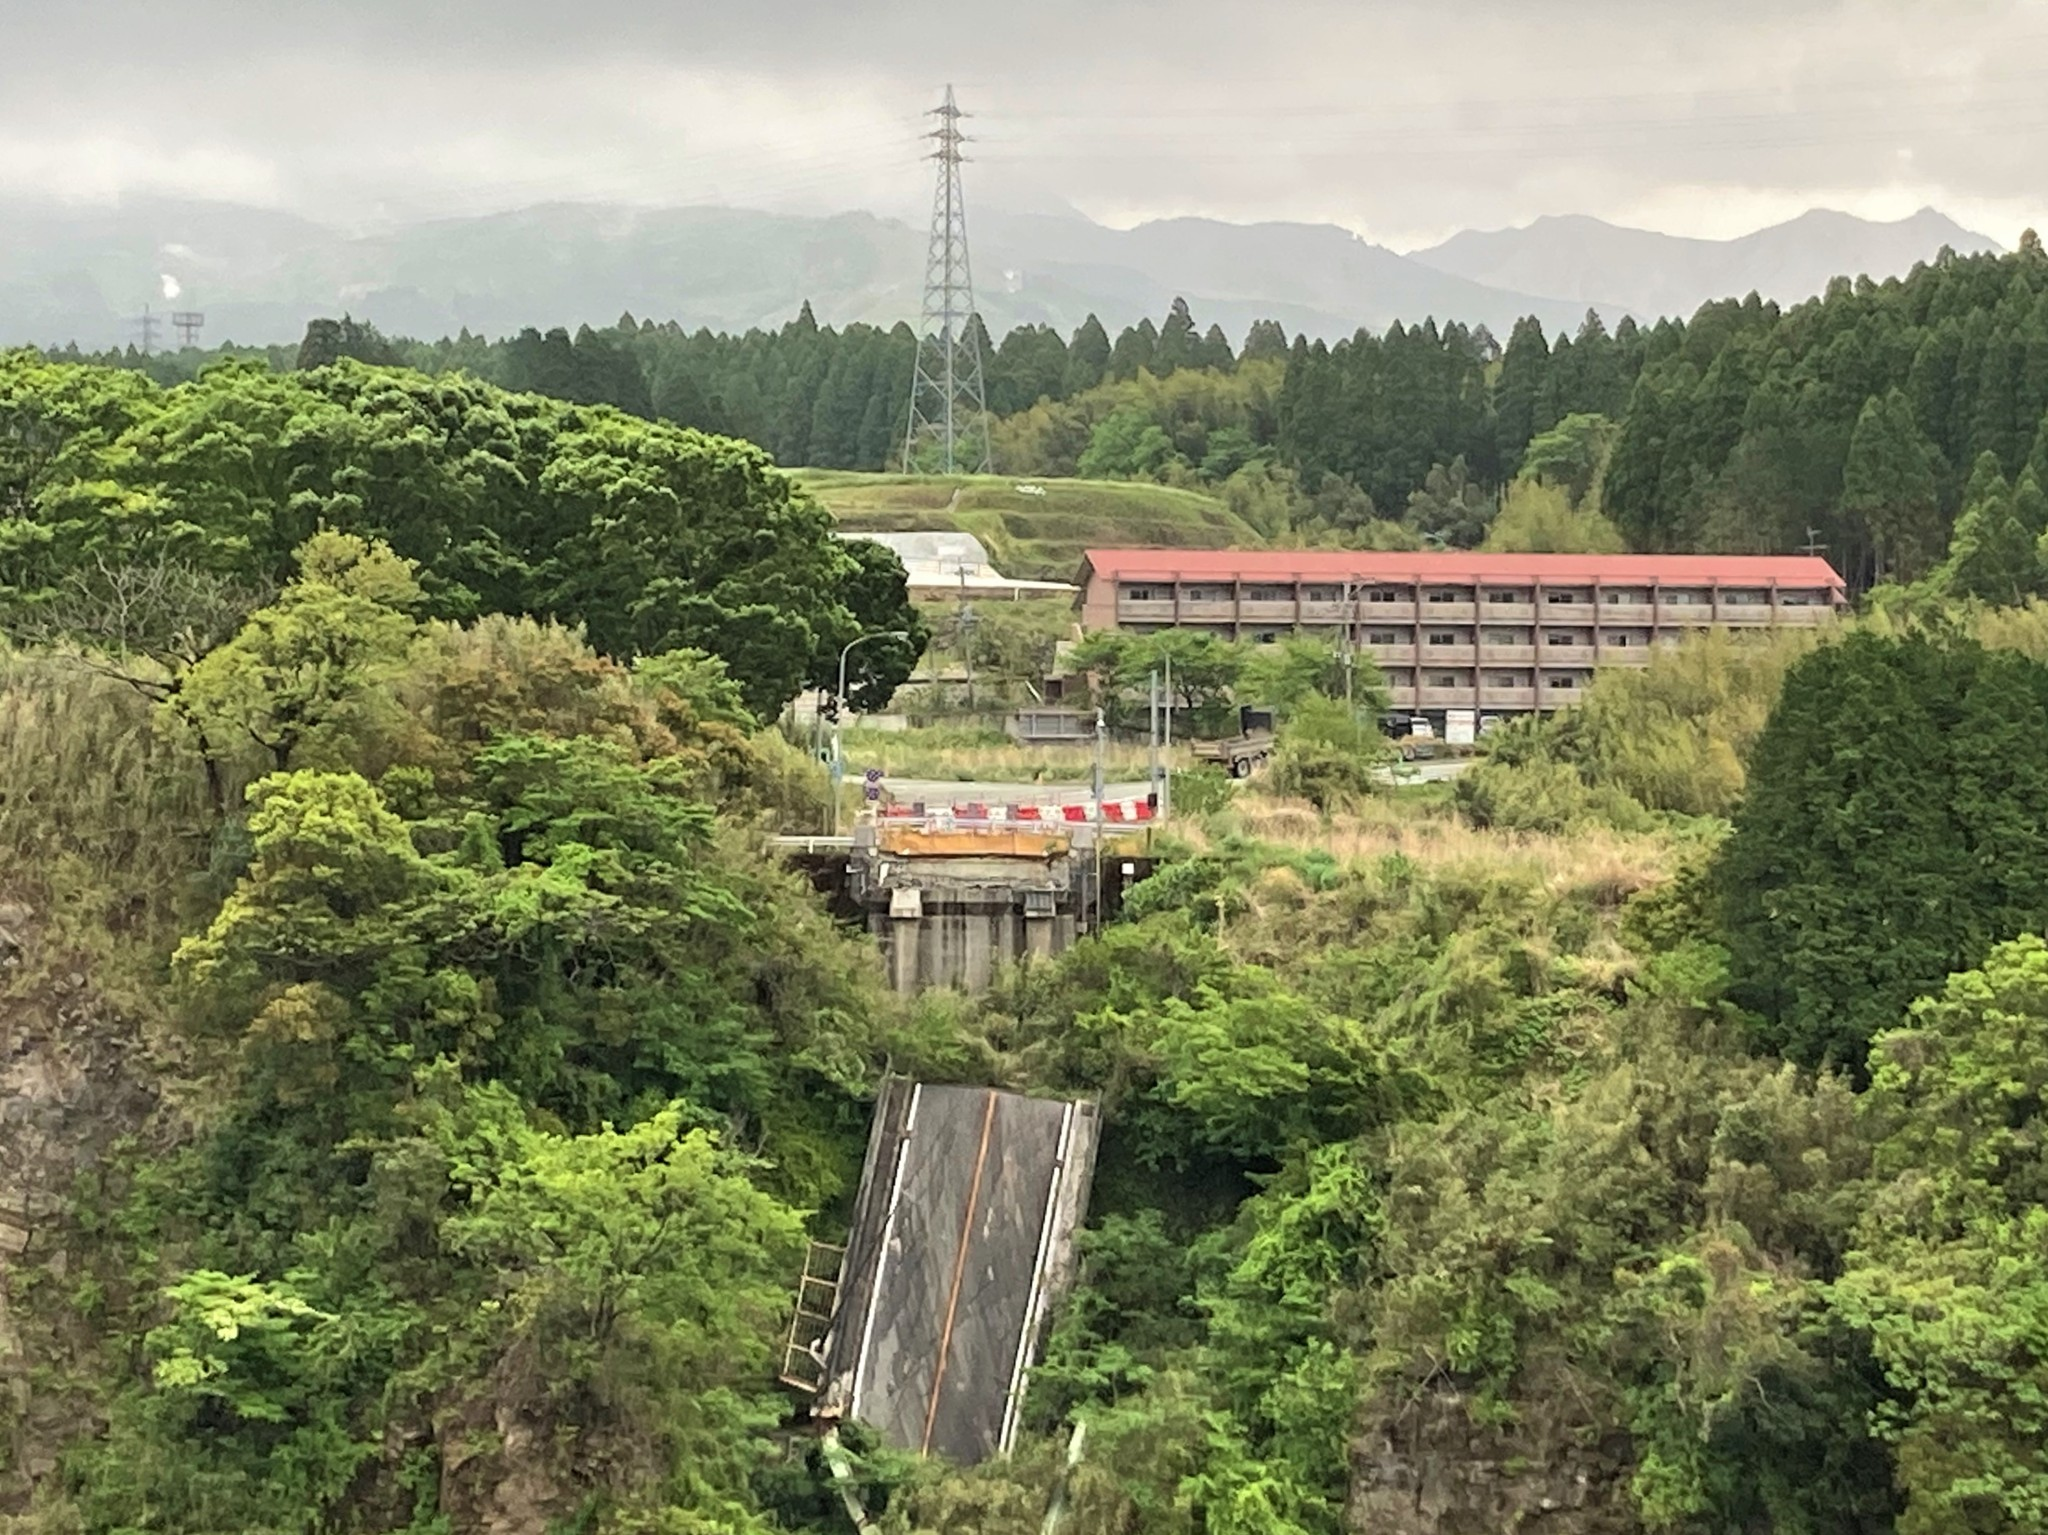 The remains of a concrete bridge destroyed during the 2016 Kumamoto earthquake hanging over the side of a tree-covered ravine.